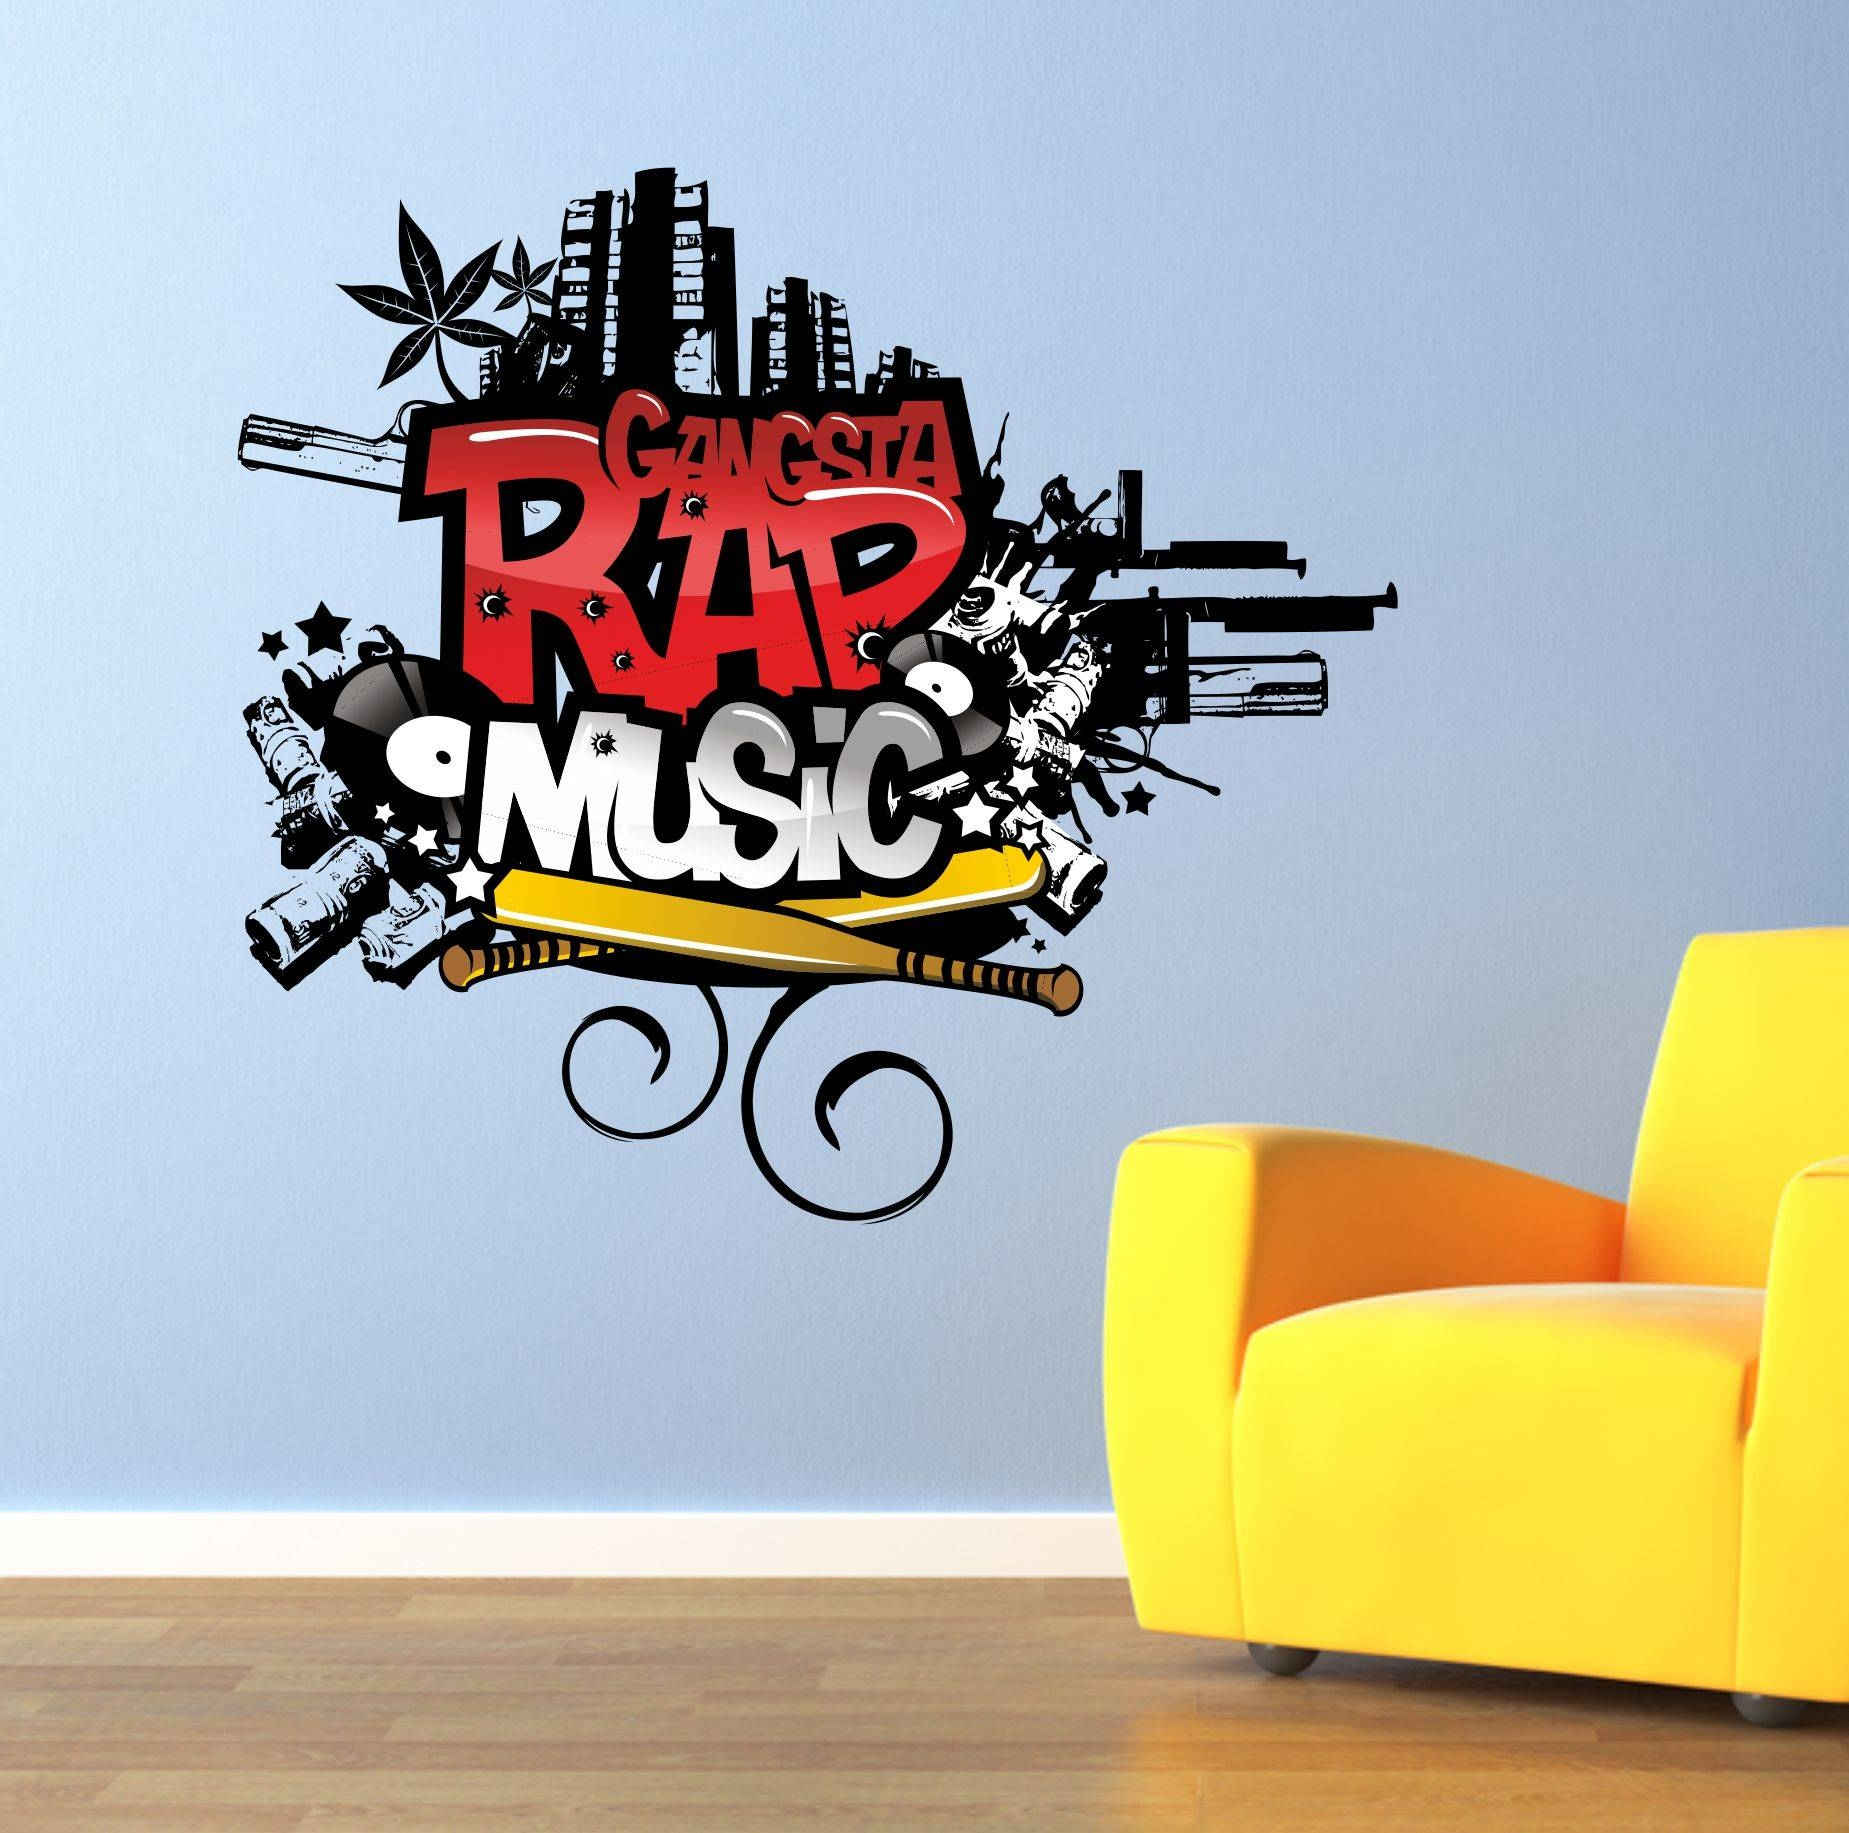 The Grafix Studio | Gangsta Rap Music Graffiti Wall Art Sticker Pertaining To 2018 Graffiti Wall Art Stickers (View 23 of 30)